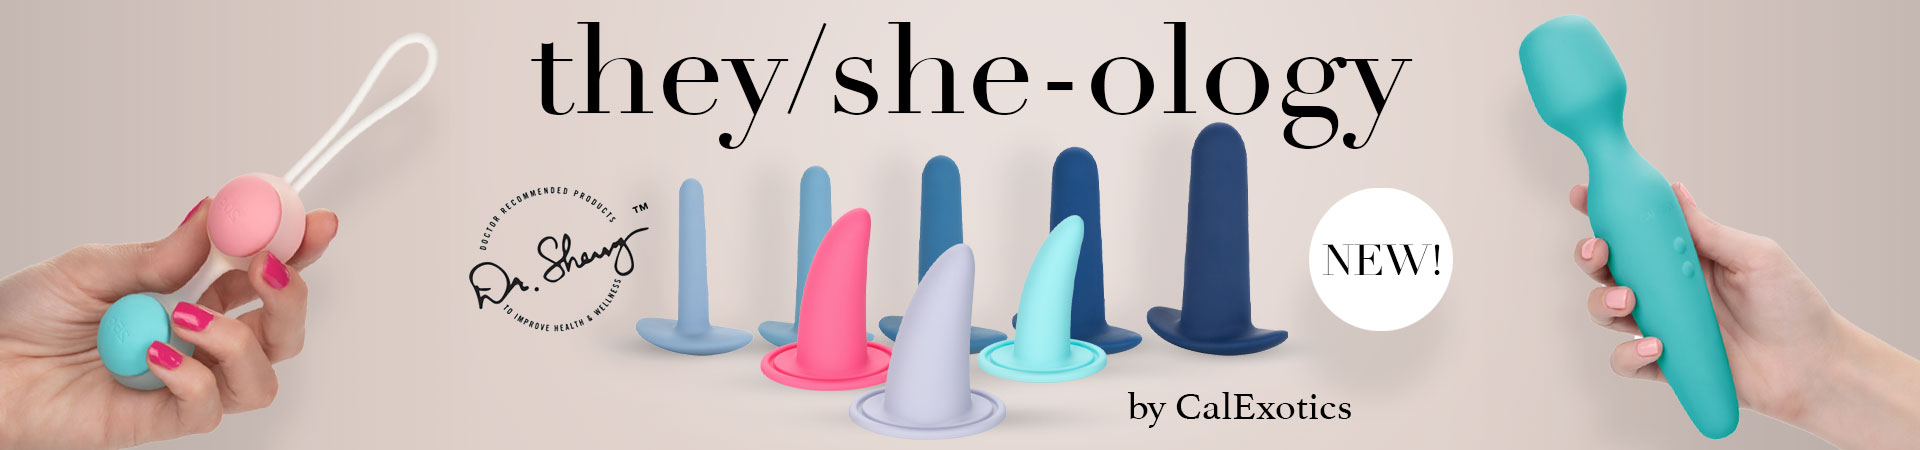 New They/She - Ology!